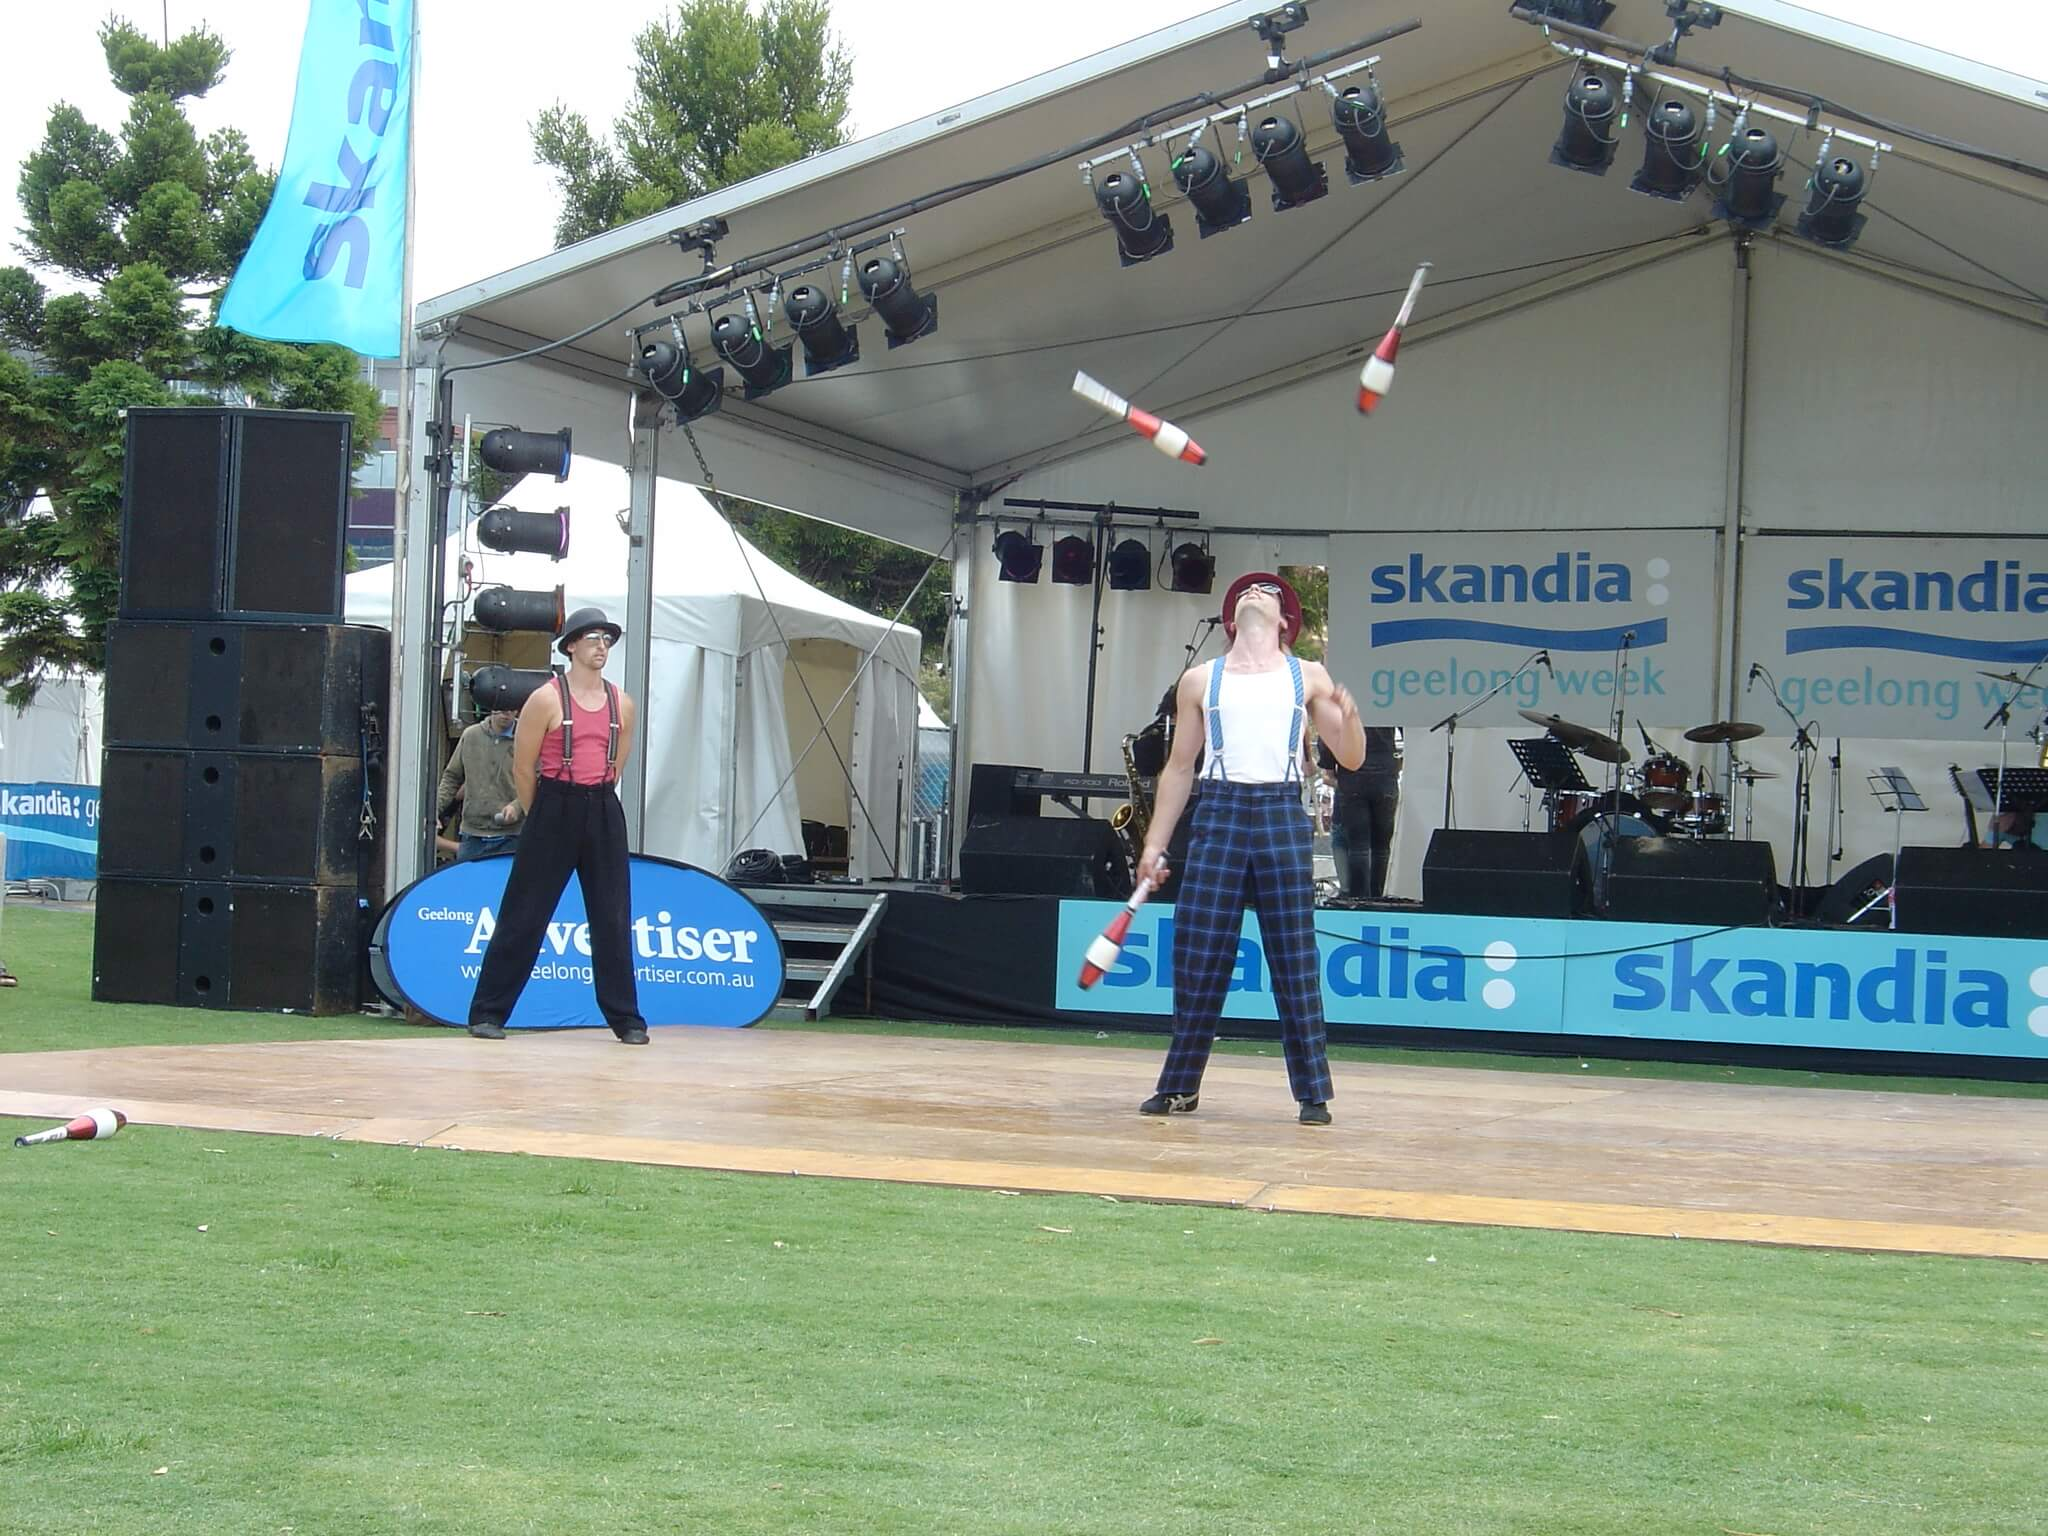 Sailing festival skandia geelong week-4